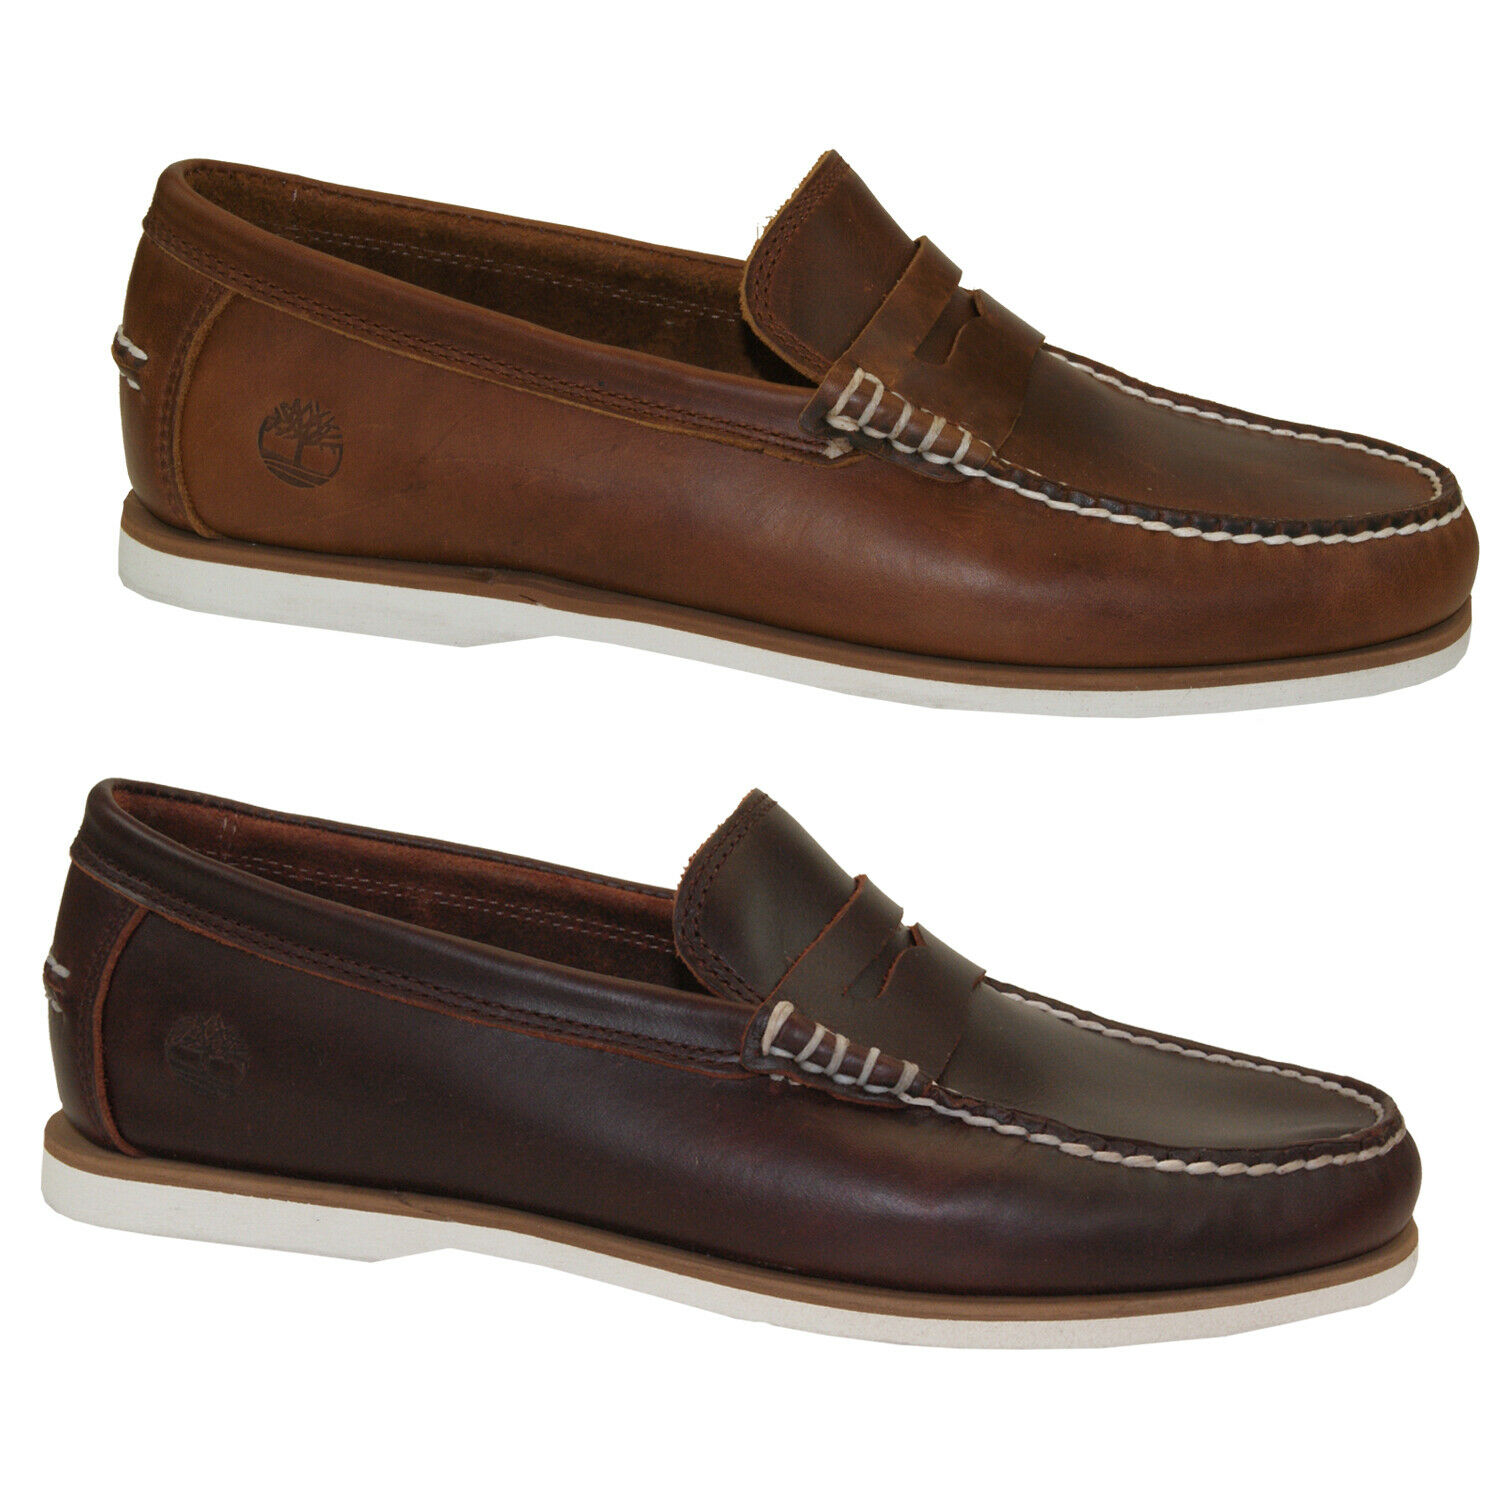 Timberland Classic Boat Penny Loafers